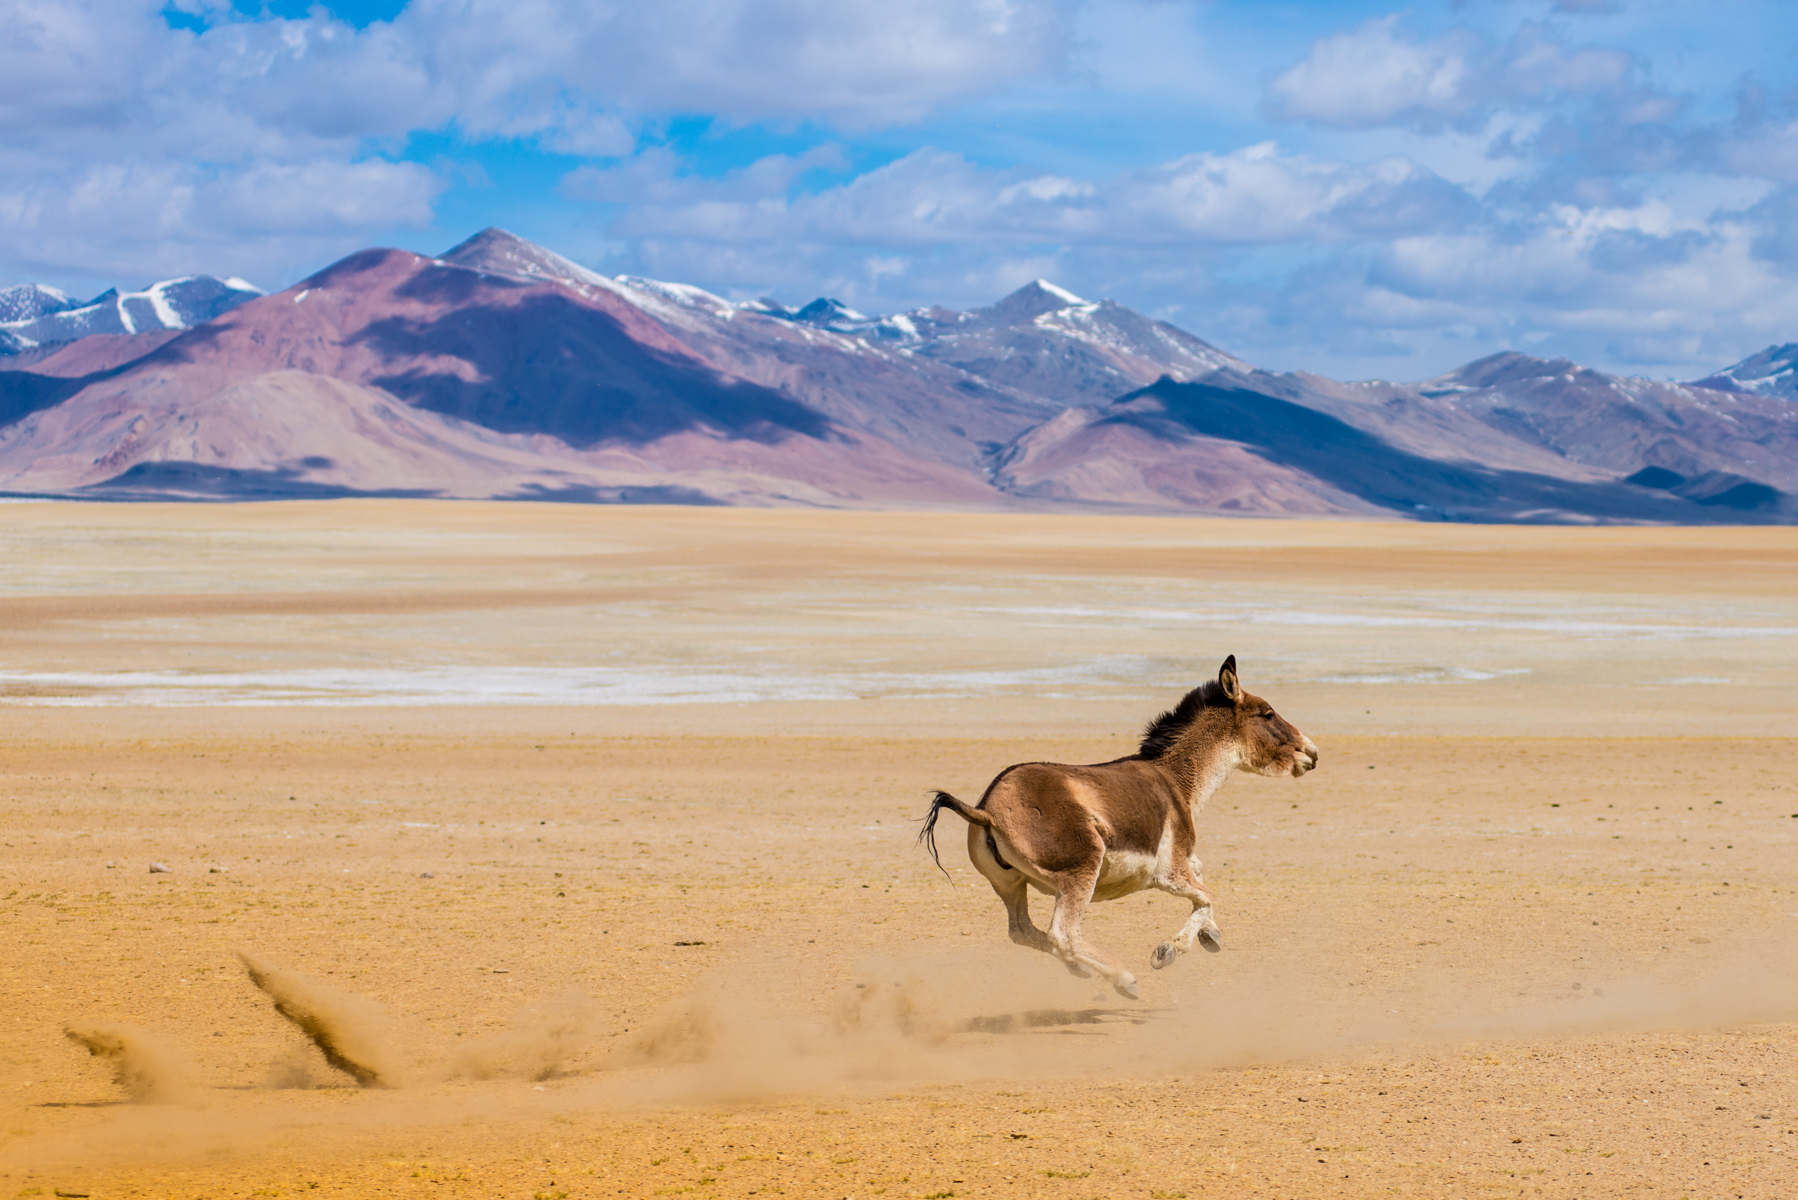 Galloping Kiang (Eqqus kiang) in the Changthang